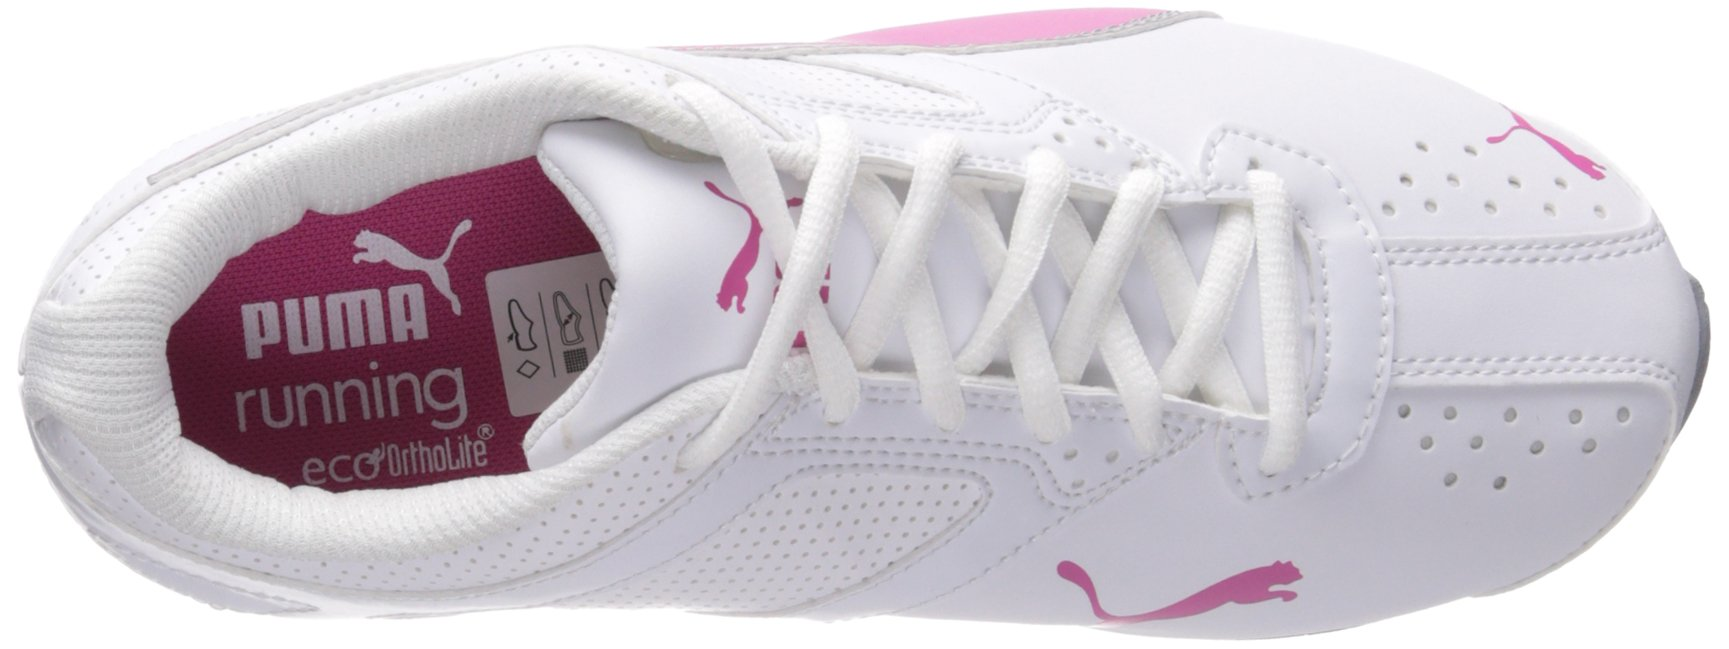 PUMA Women's Tazon 6 WN's fm Cross-Trainer Shoe, White/Fuchsia Purple Silver, 6.5 M US by PUMA (Image #8)